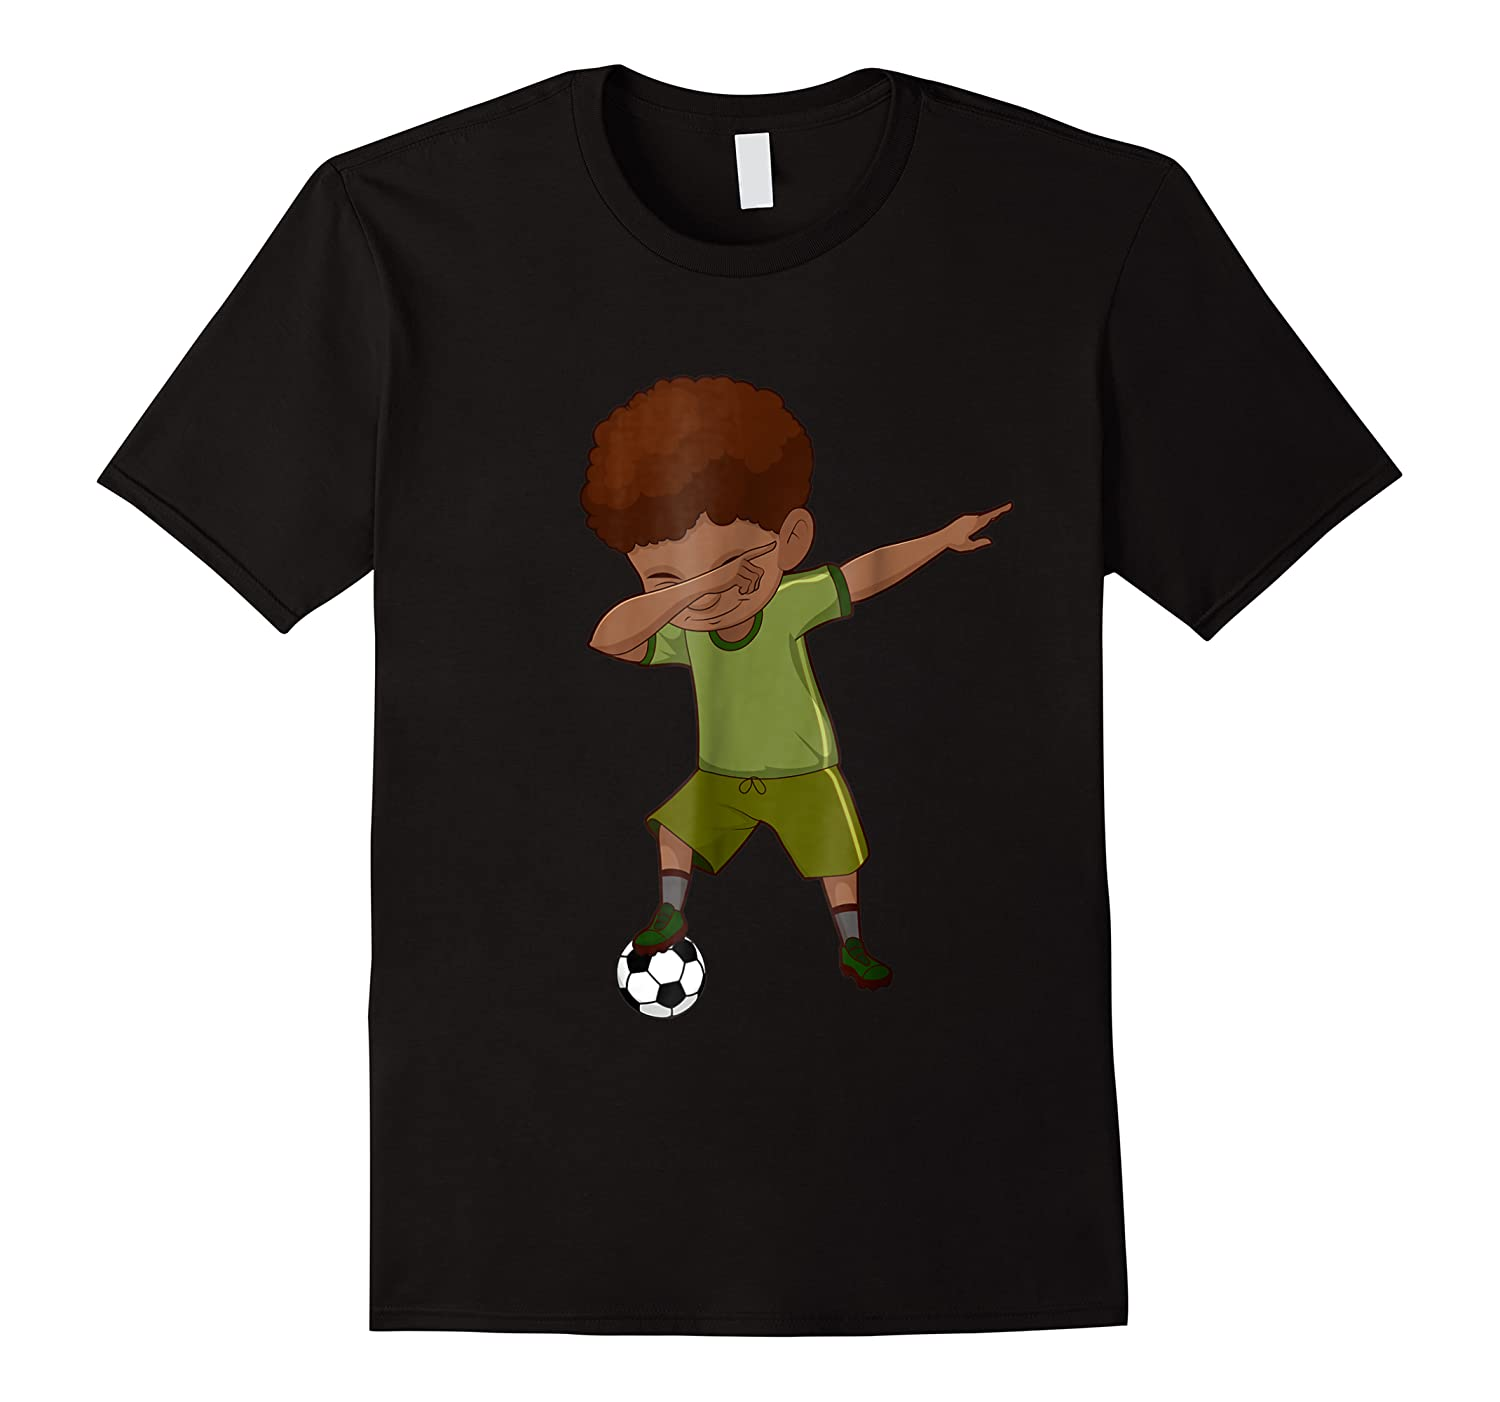 Soccer Shirt For Funny Dabbing Tee Gifts